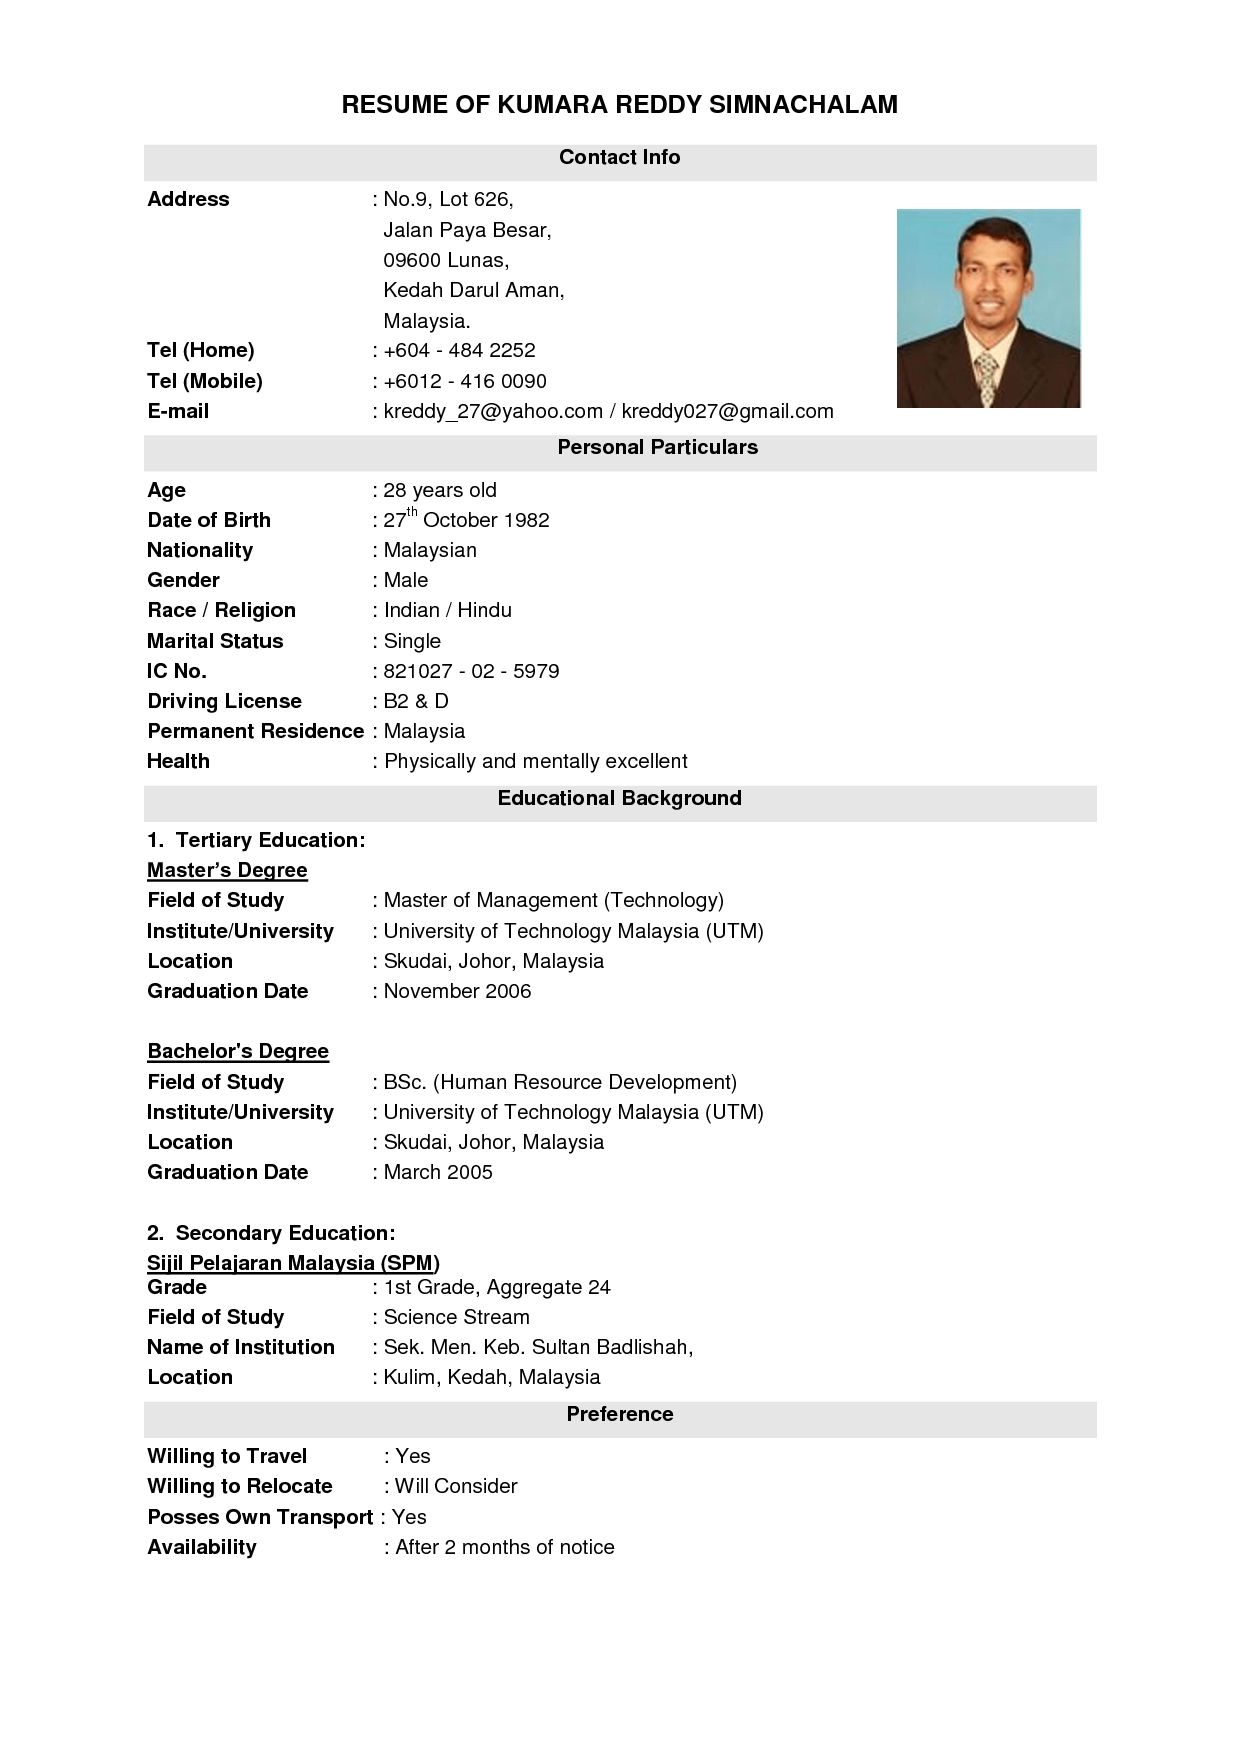 Sample Resume For Job Application resume for job application resume name Best Resume Template Malaysia Resumecurriculum Vitae Template Msn Scholarship In Sample Resume Account Executive Malaysia Besslers